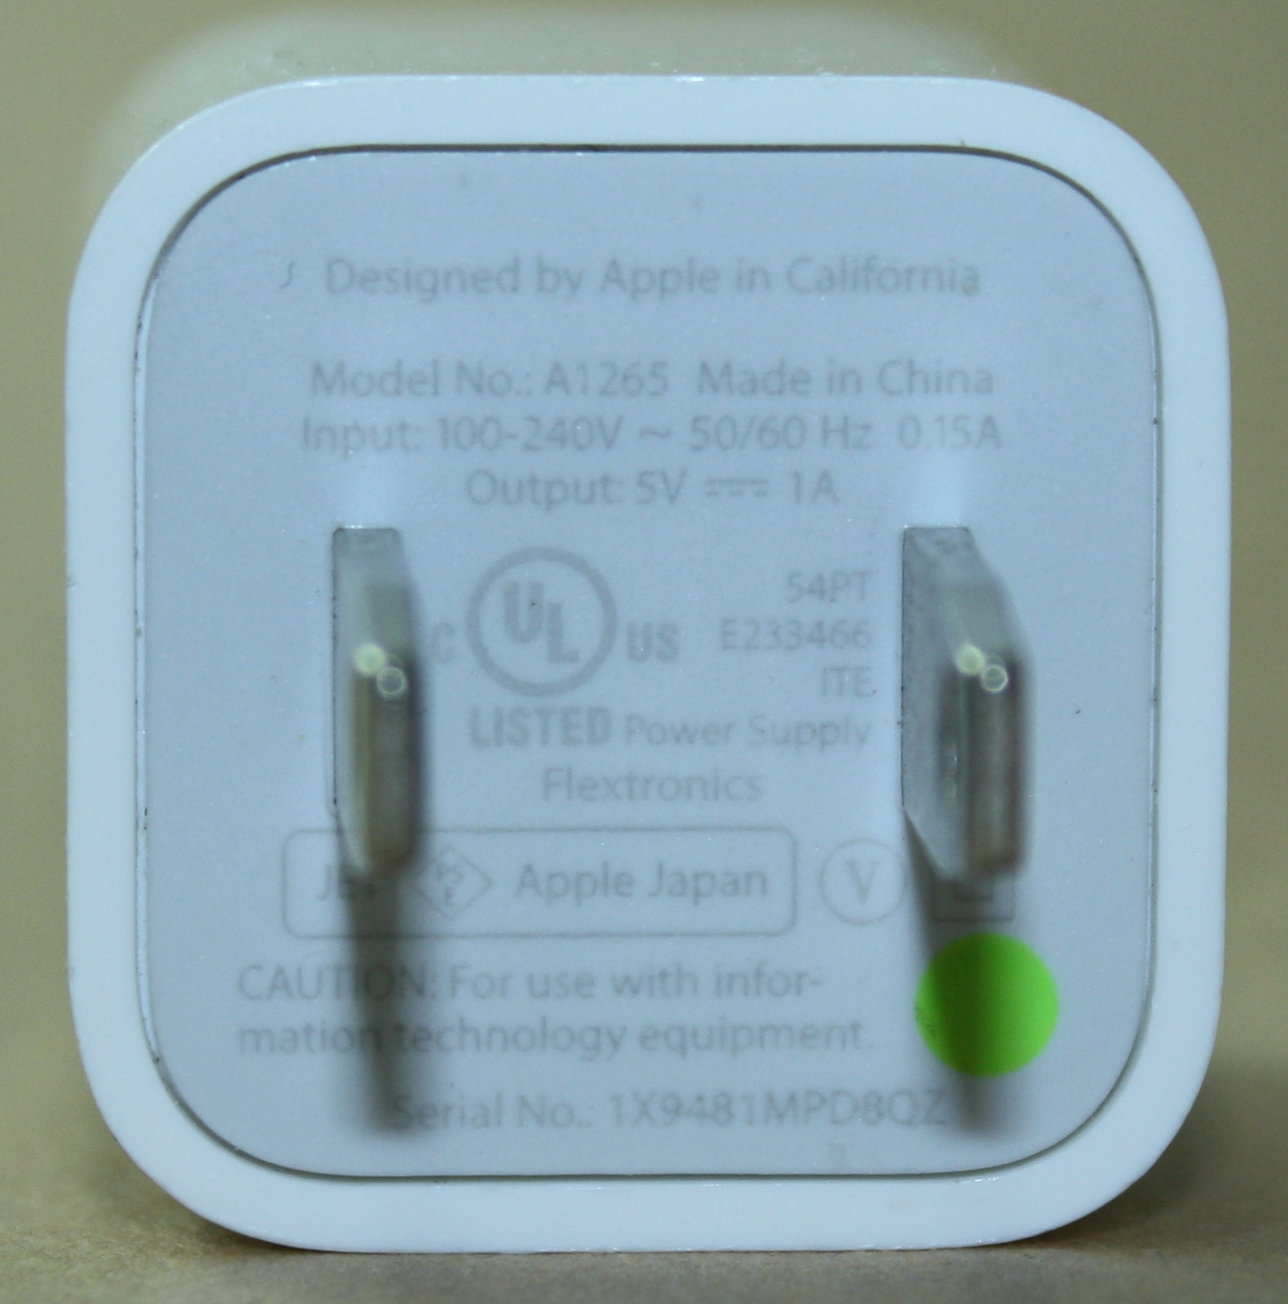 Apple Iphone Charger Teardown Quality In A Tiny Expensive Package Die Hard Battery Wiring Diagram Apples 2008 Safety Recall